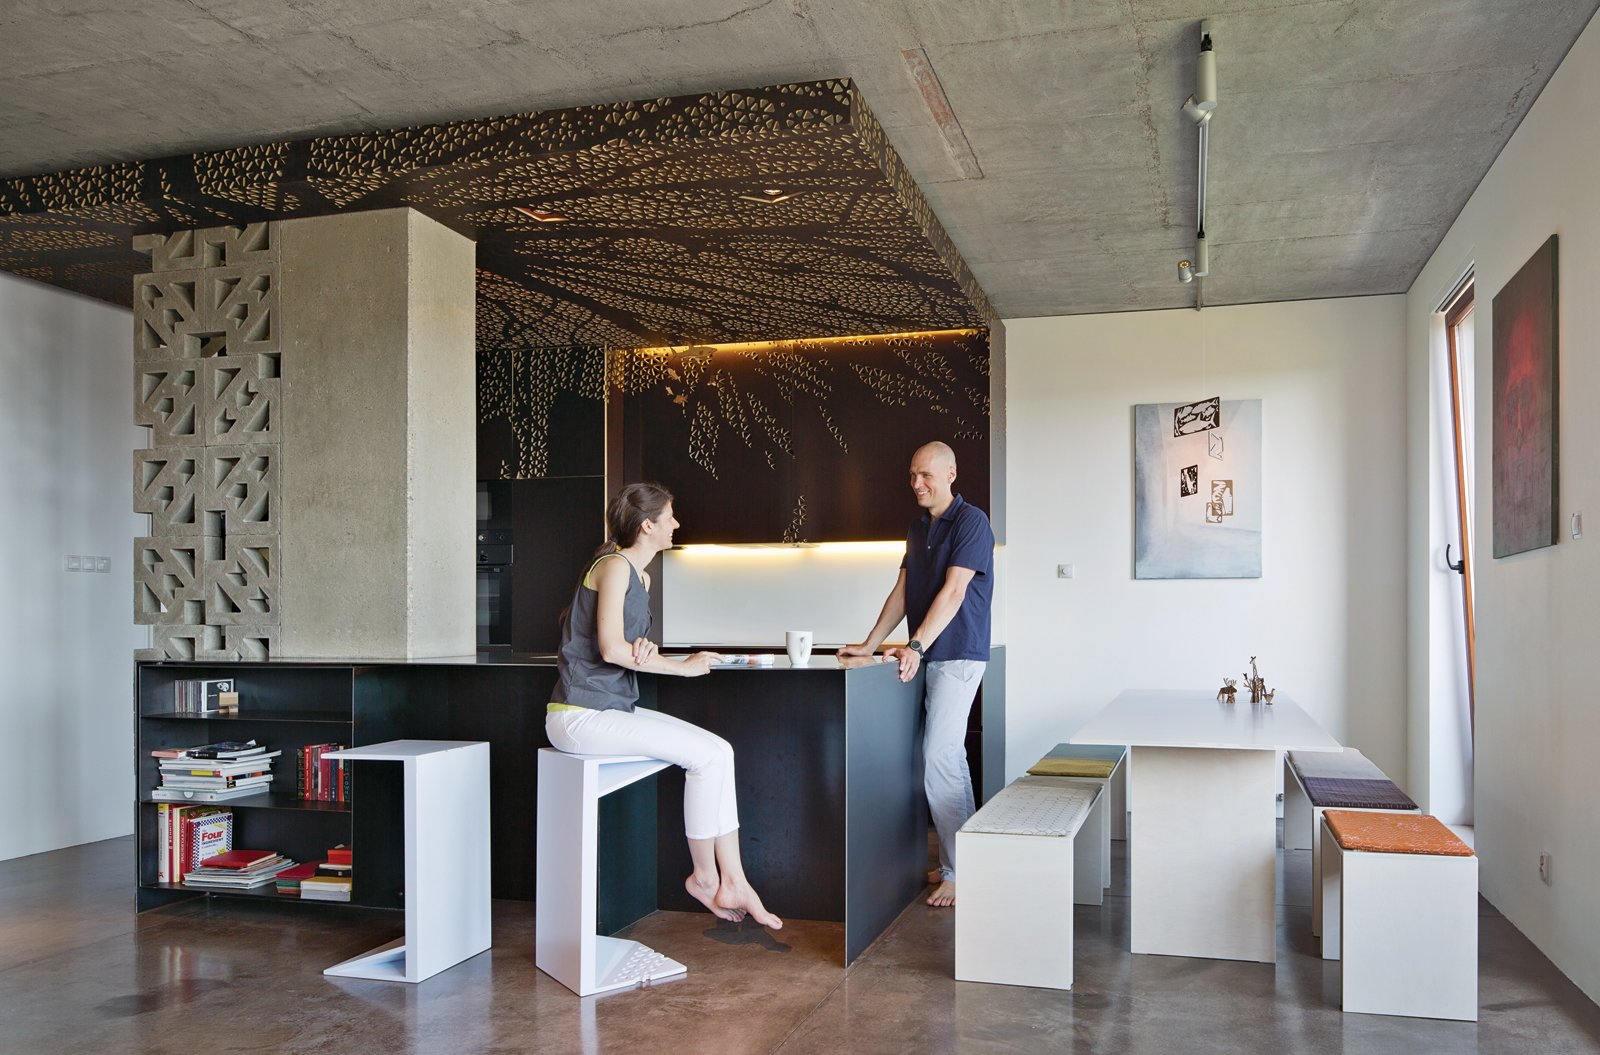 Gentil Photo 4 Of 9 In Warsaw Loft With Multifunctional Furniture   Dwell